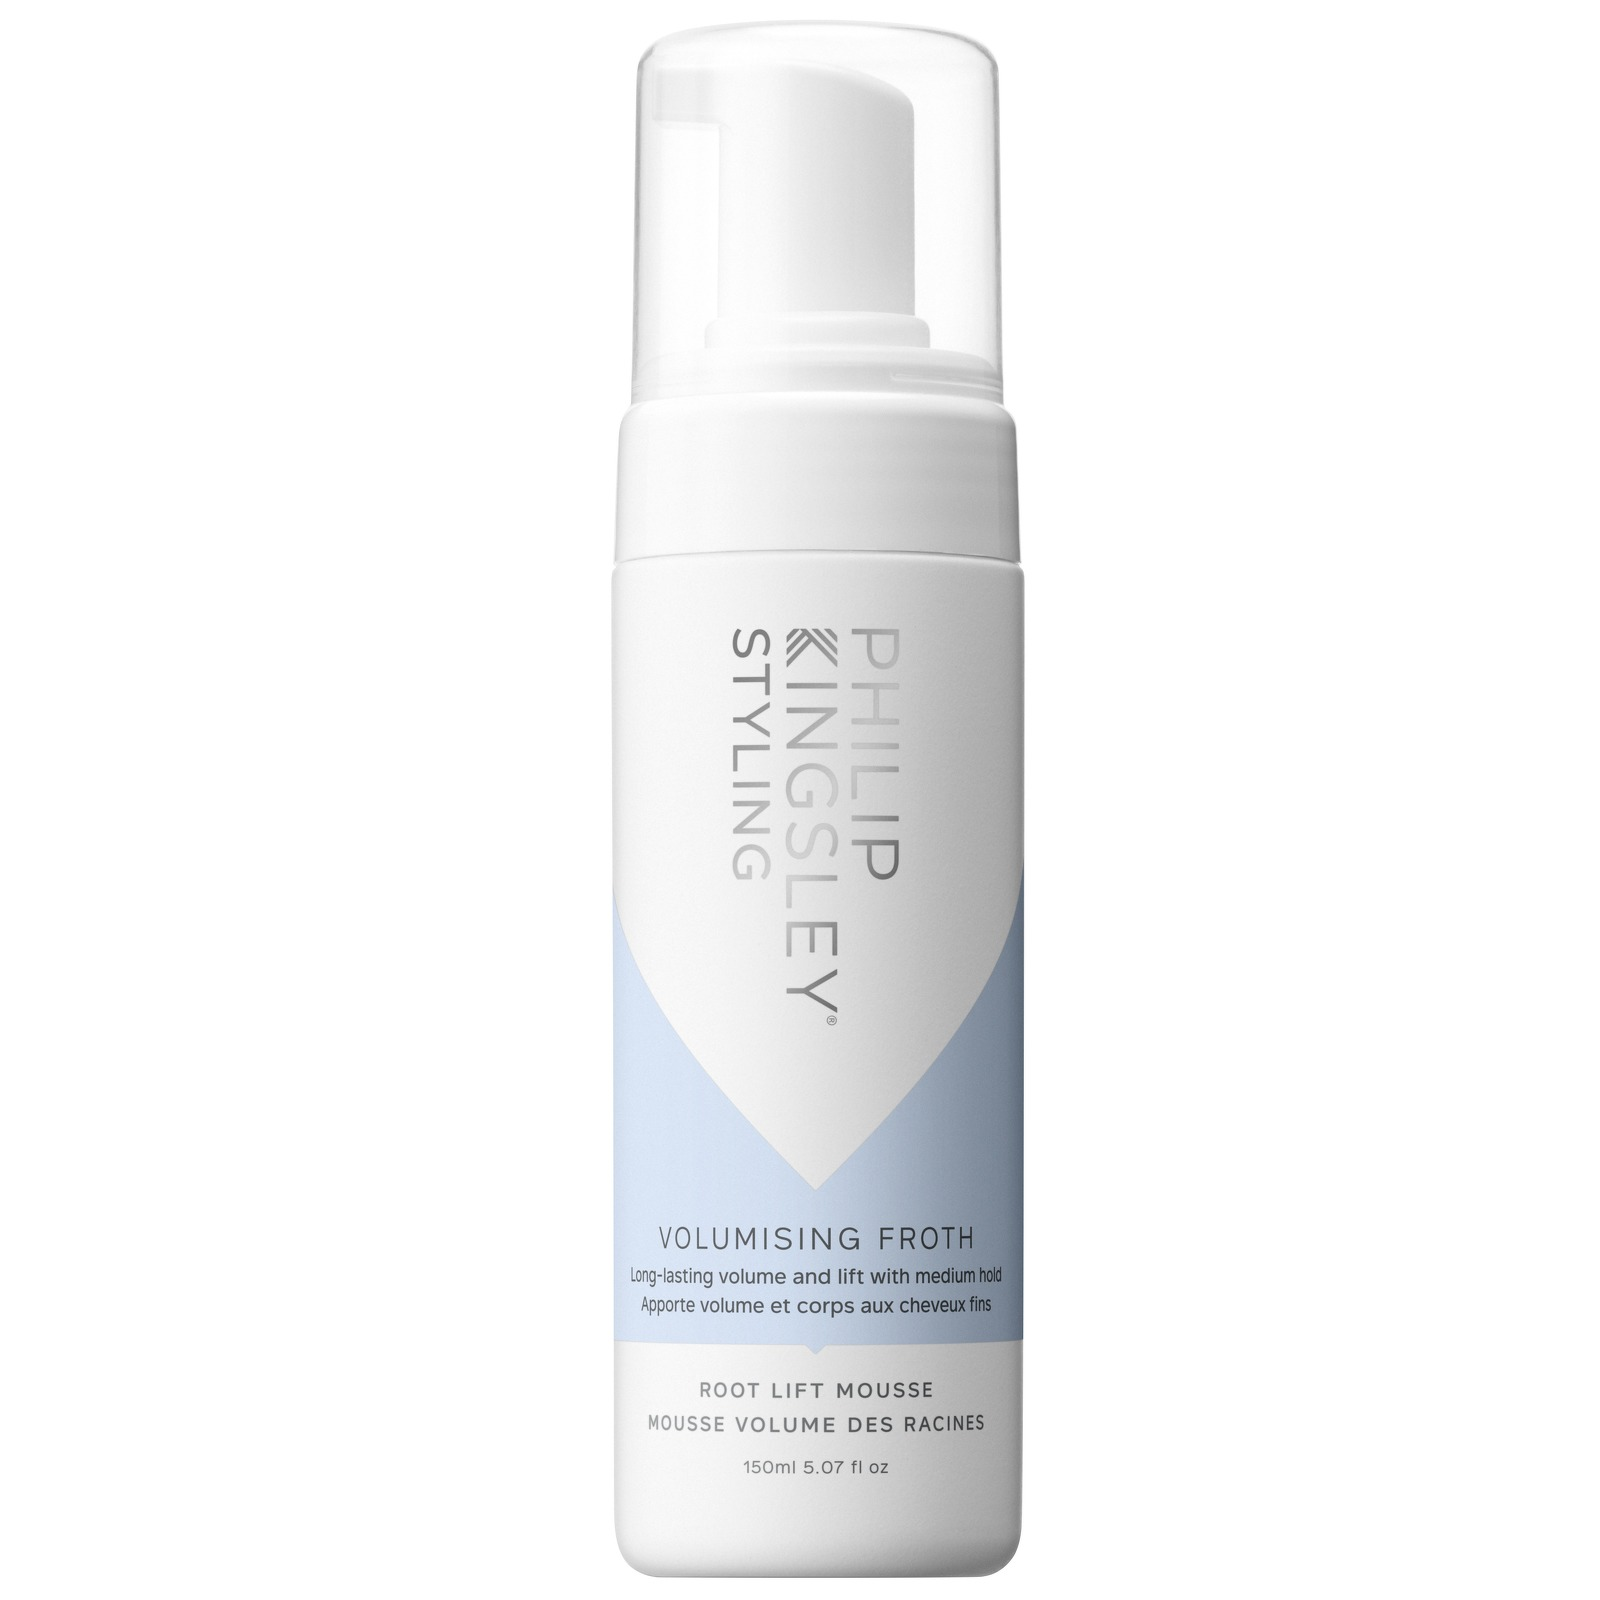 Philip Kingsley Styling Volumising Froth Root Lift Mousse 150ml